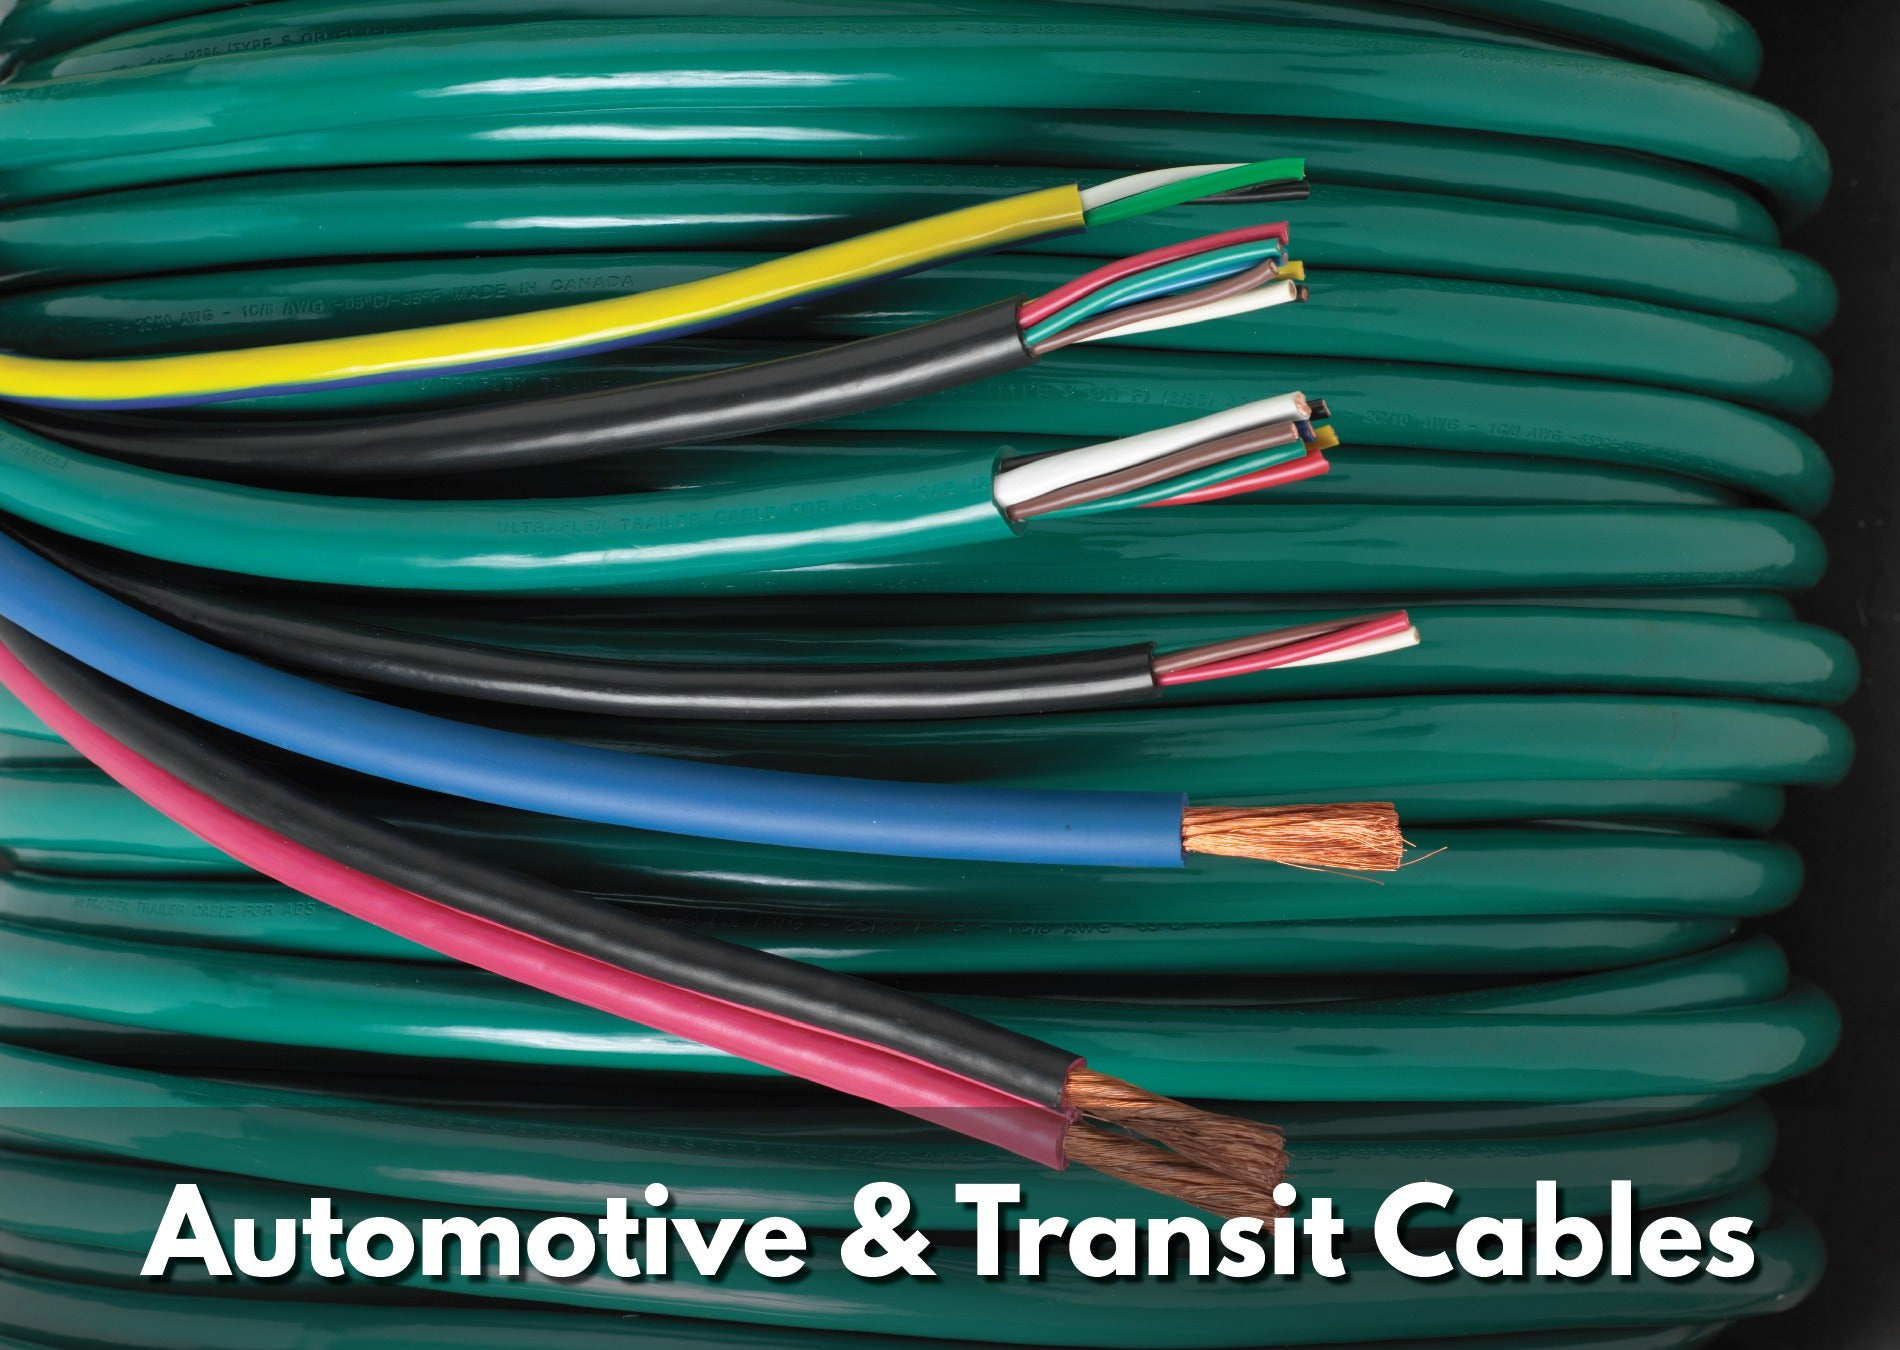 Texcan - View All Products - Automotive & Transit Cables.jpg